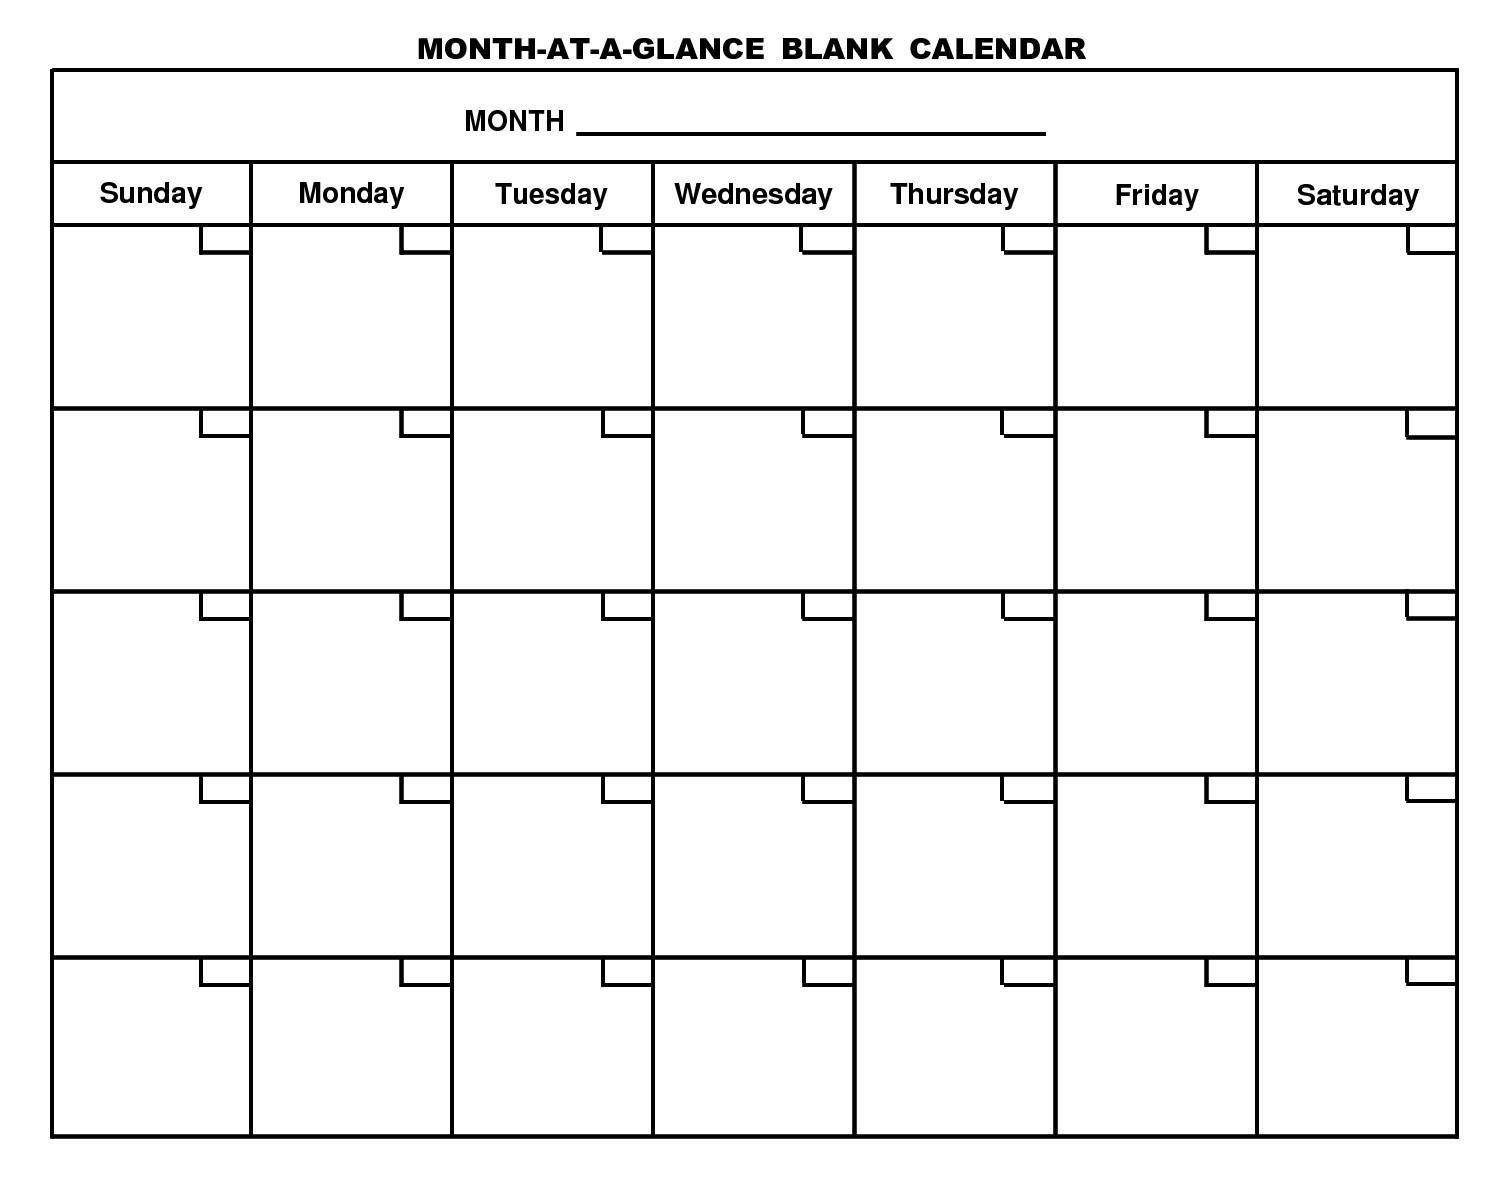 Blank Monthly Calendars Yahoo Search Results | Printable